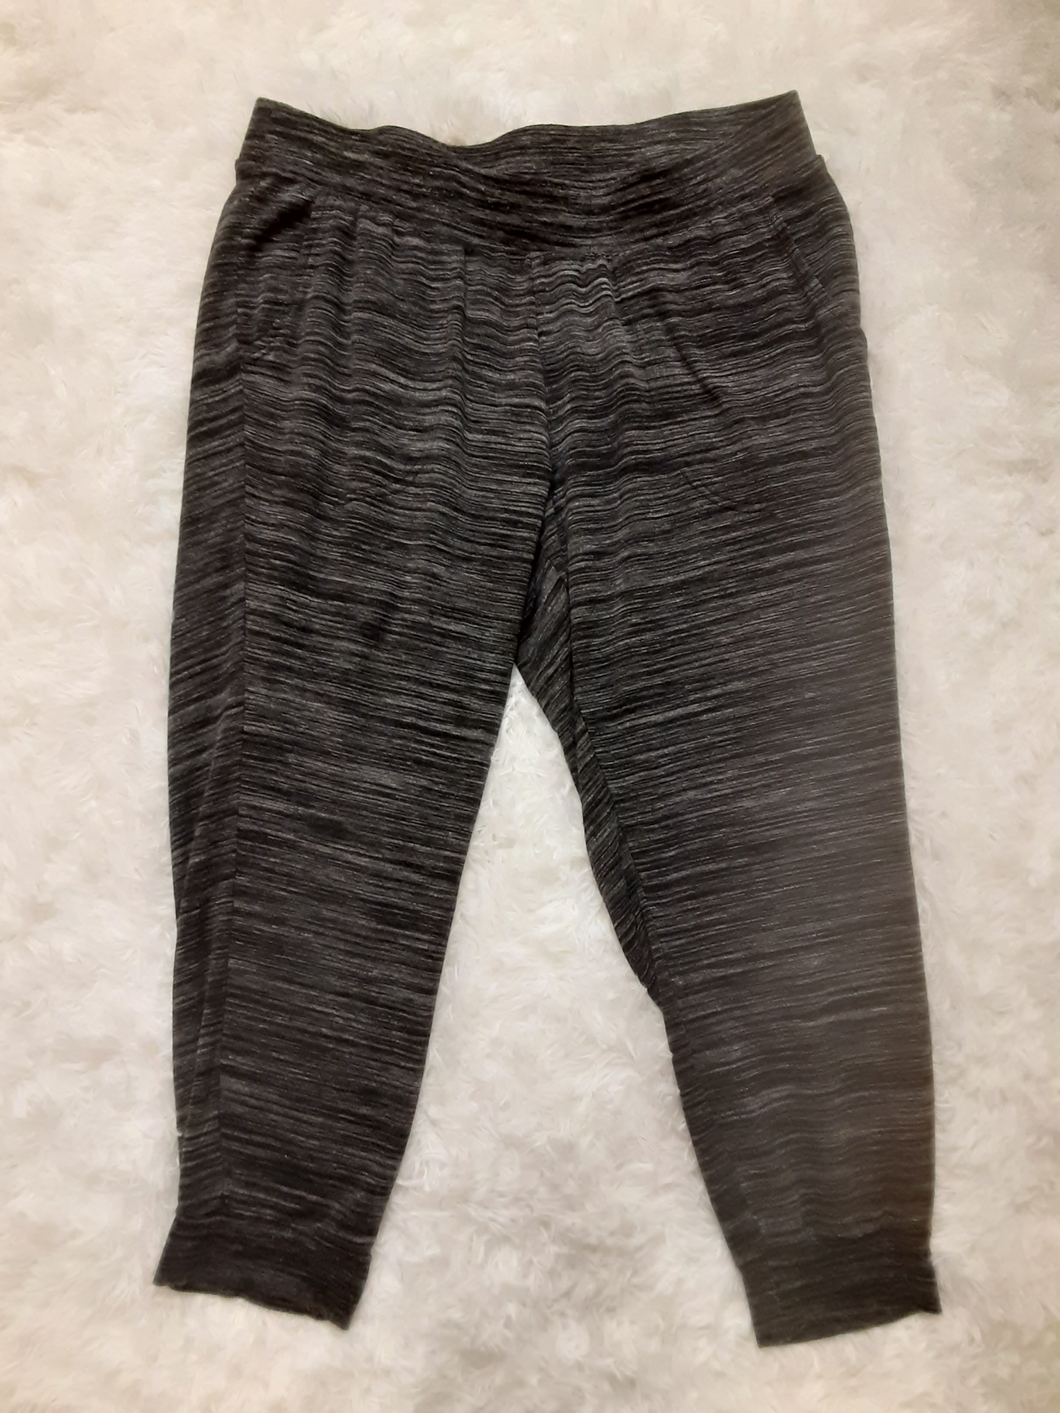 Torrid Athletic Pants Size 7/8 (29)